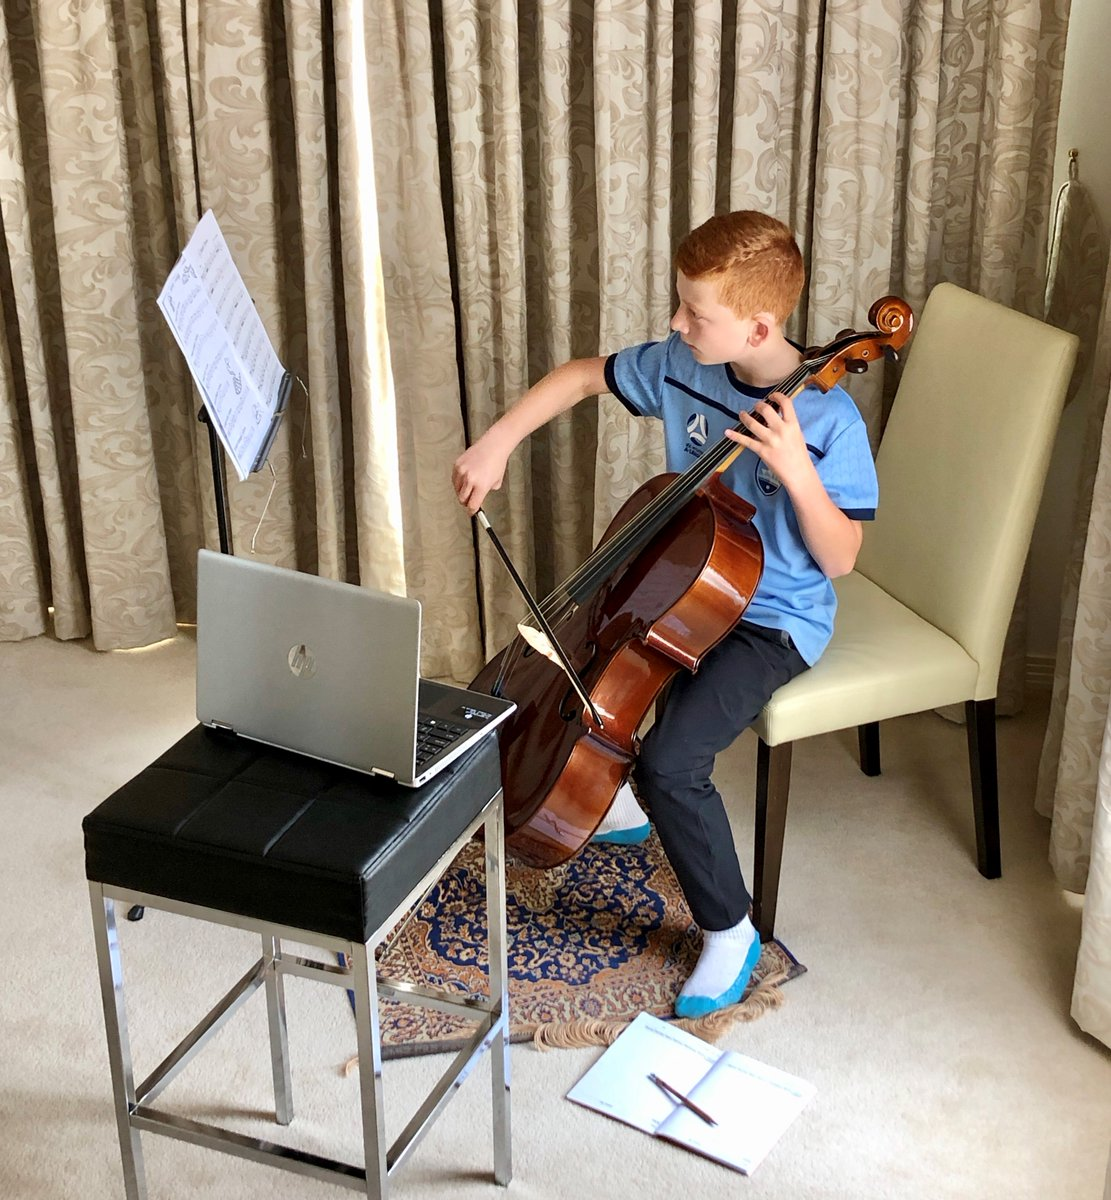 Conor (Year 5) continues his cello practice at home with an online lesson. It's great to see our students keeping up with their musical learning & creative expression.